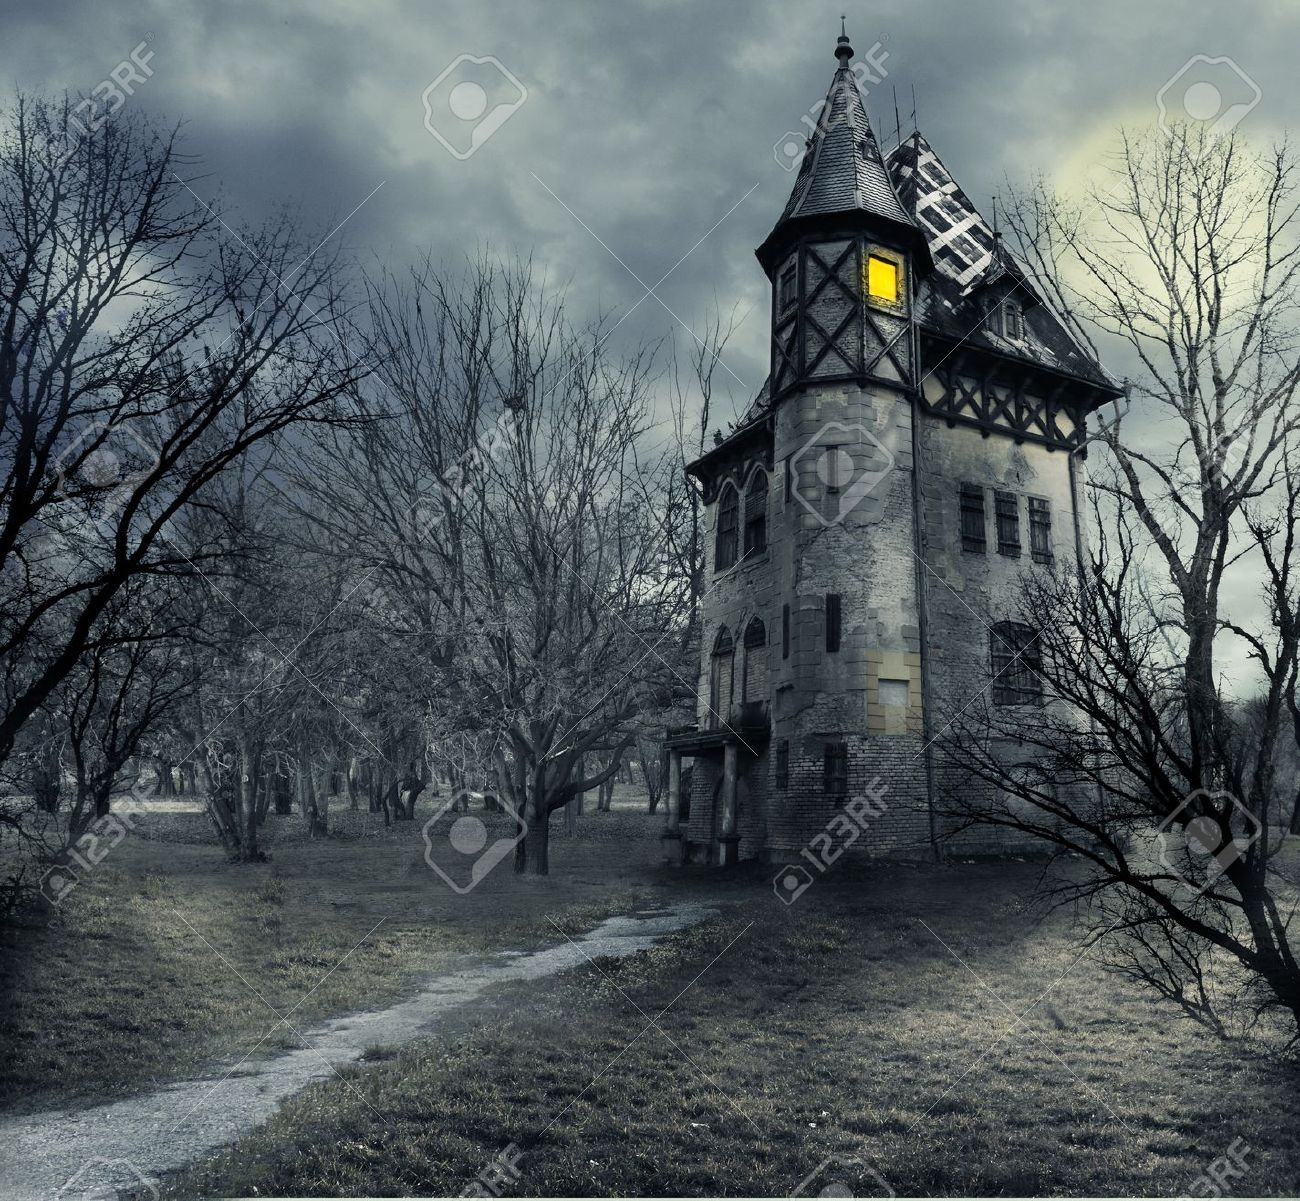 Halloween design with haunted house - 21724809